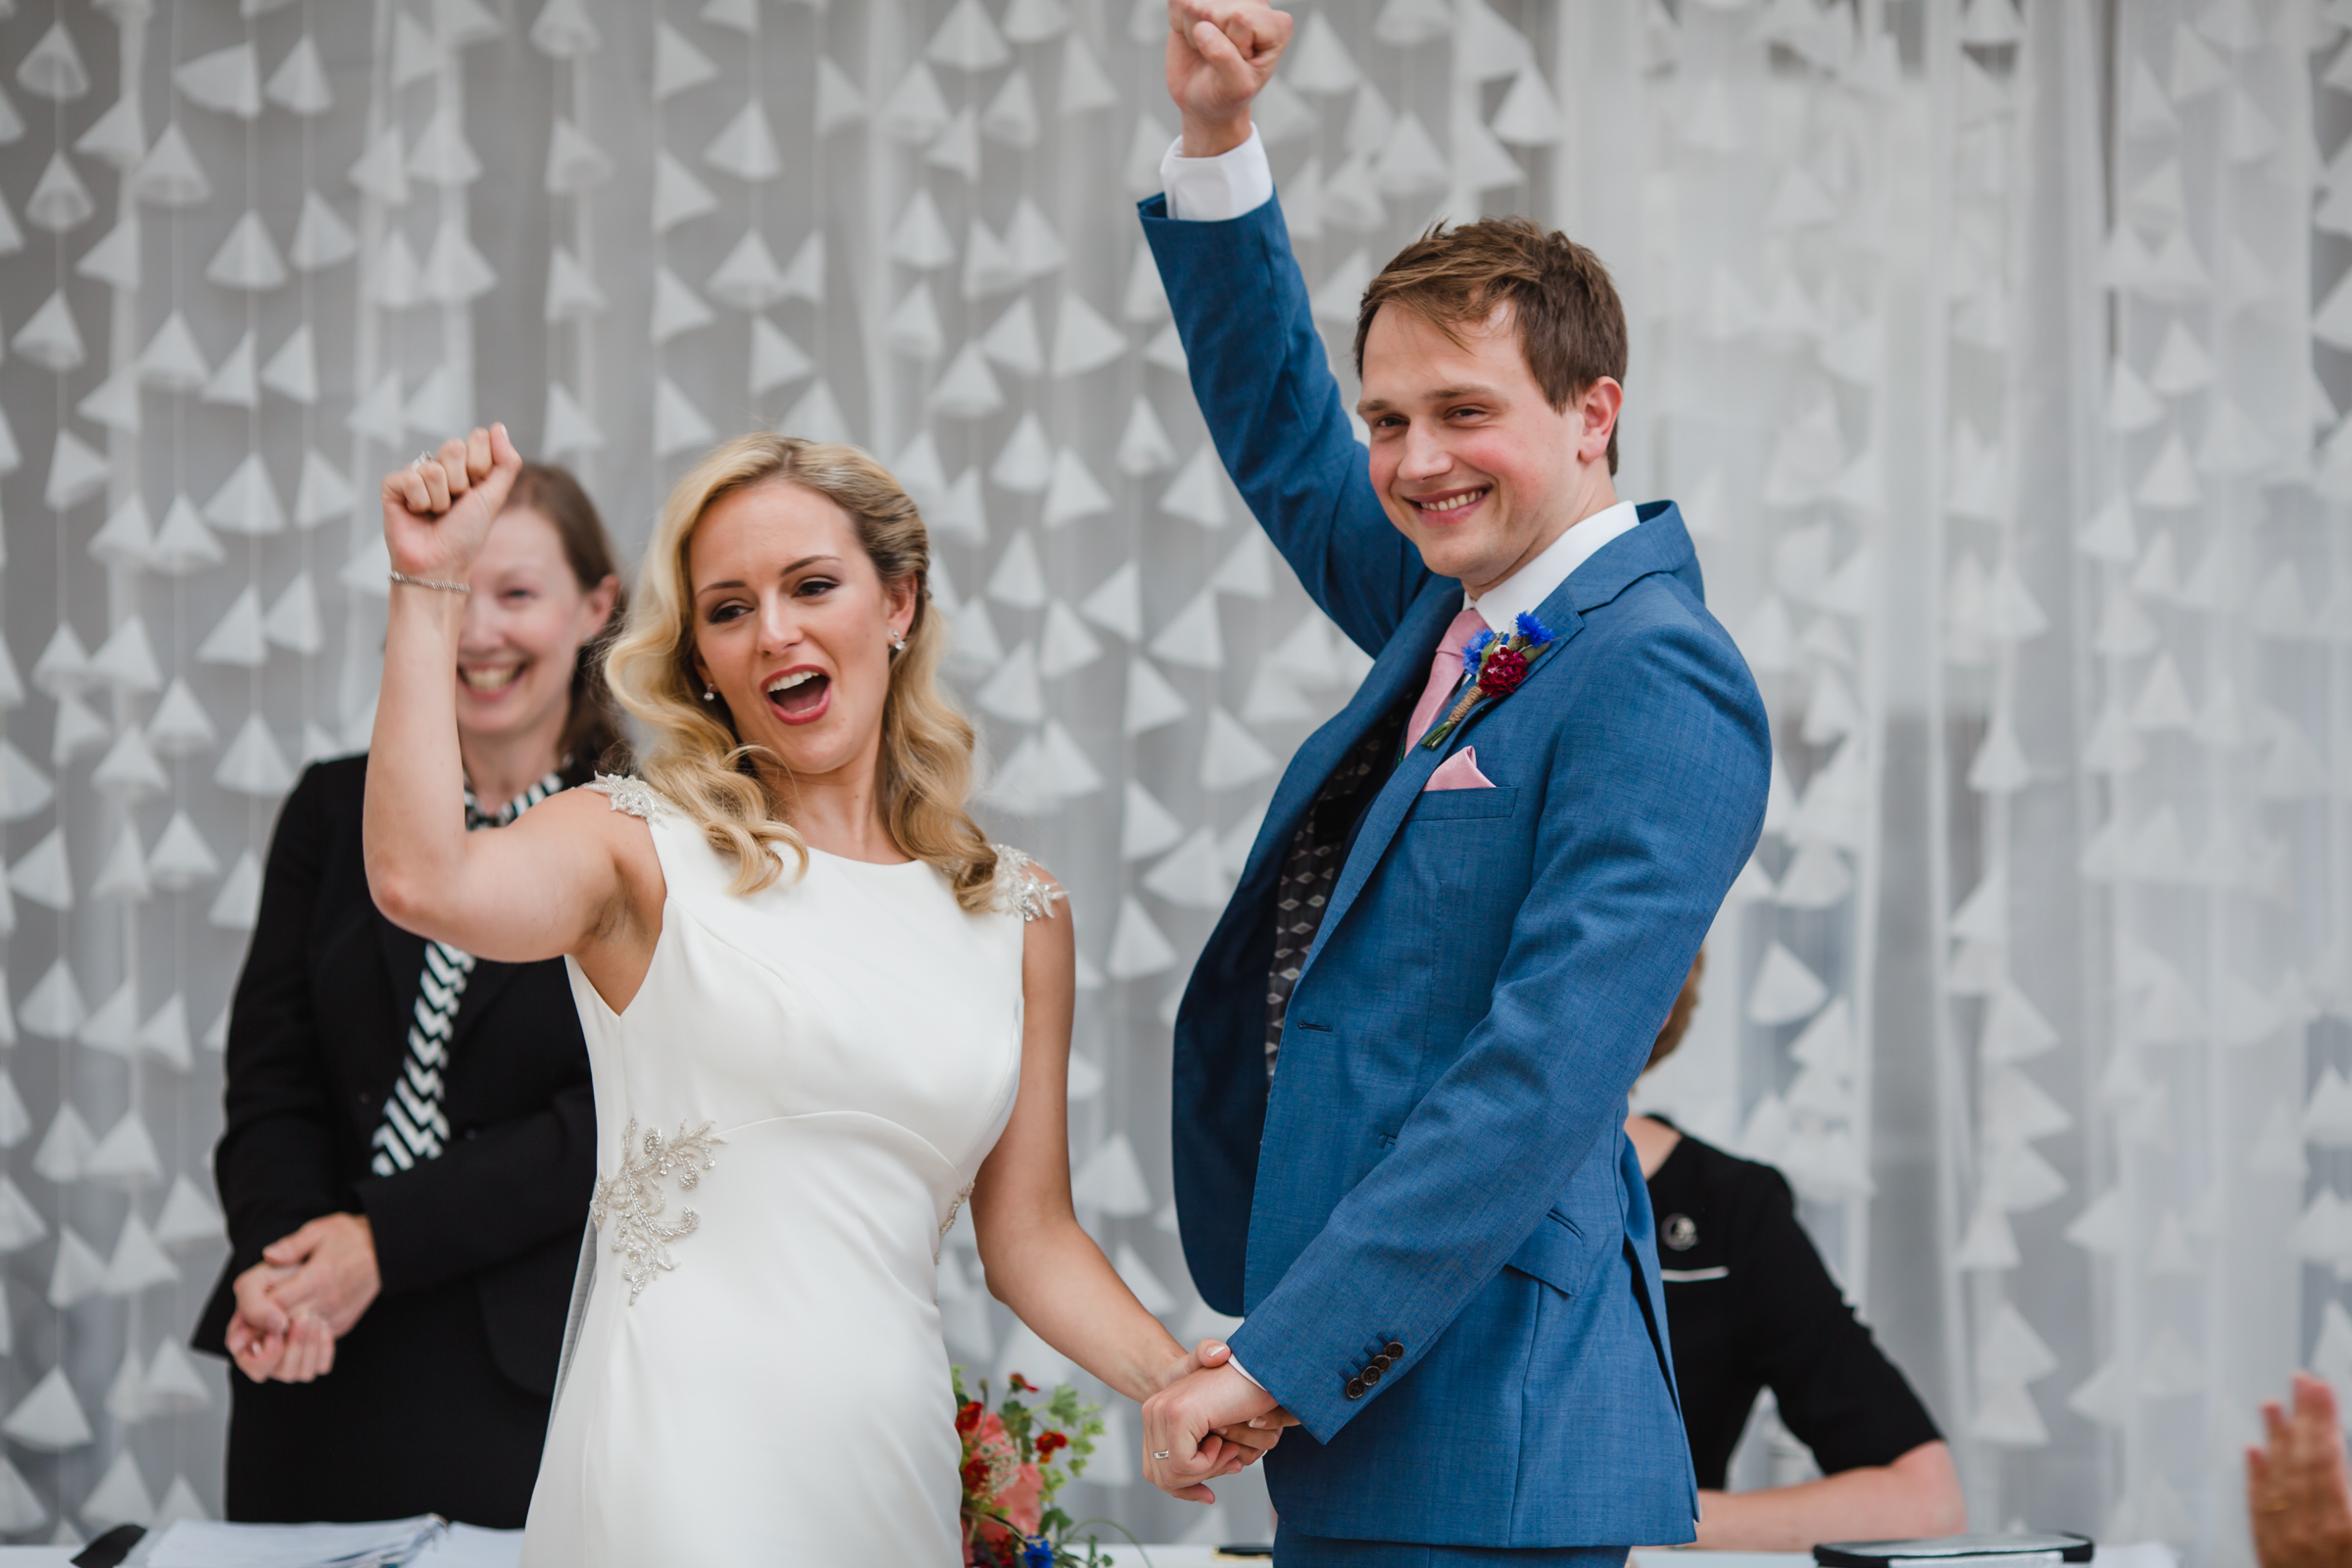 a cheer goes up as a bride and groom are married at fazeley studios birmingham